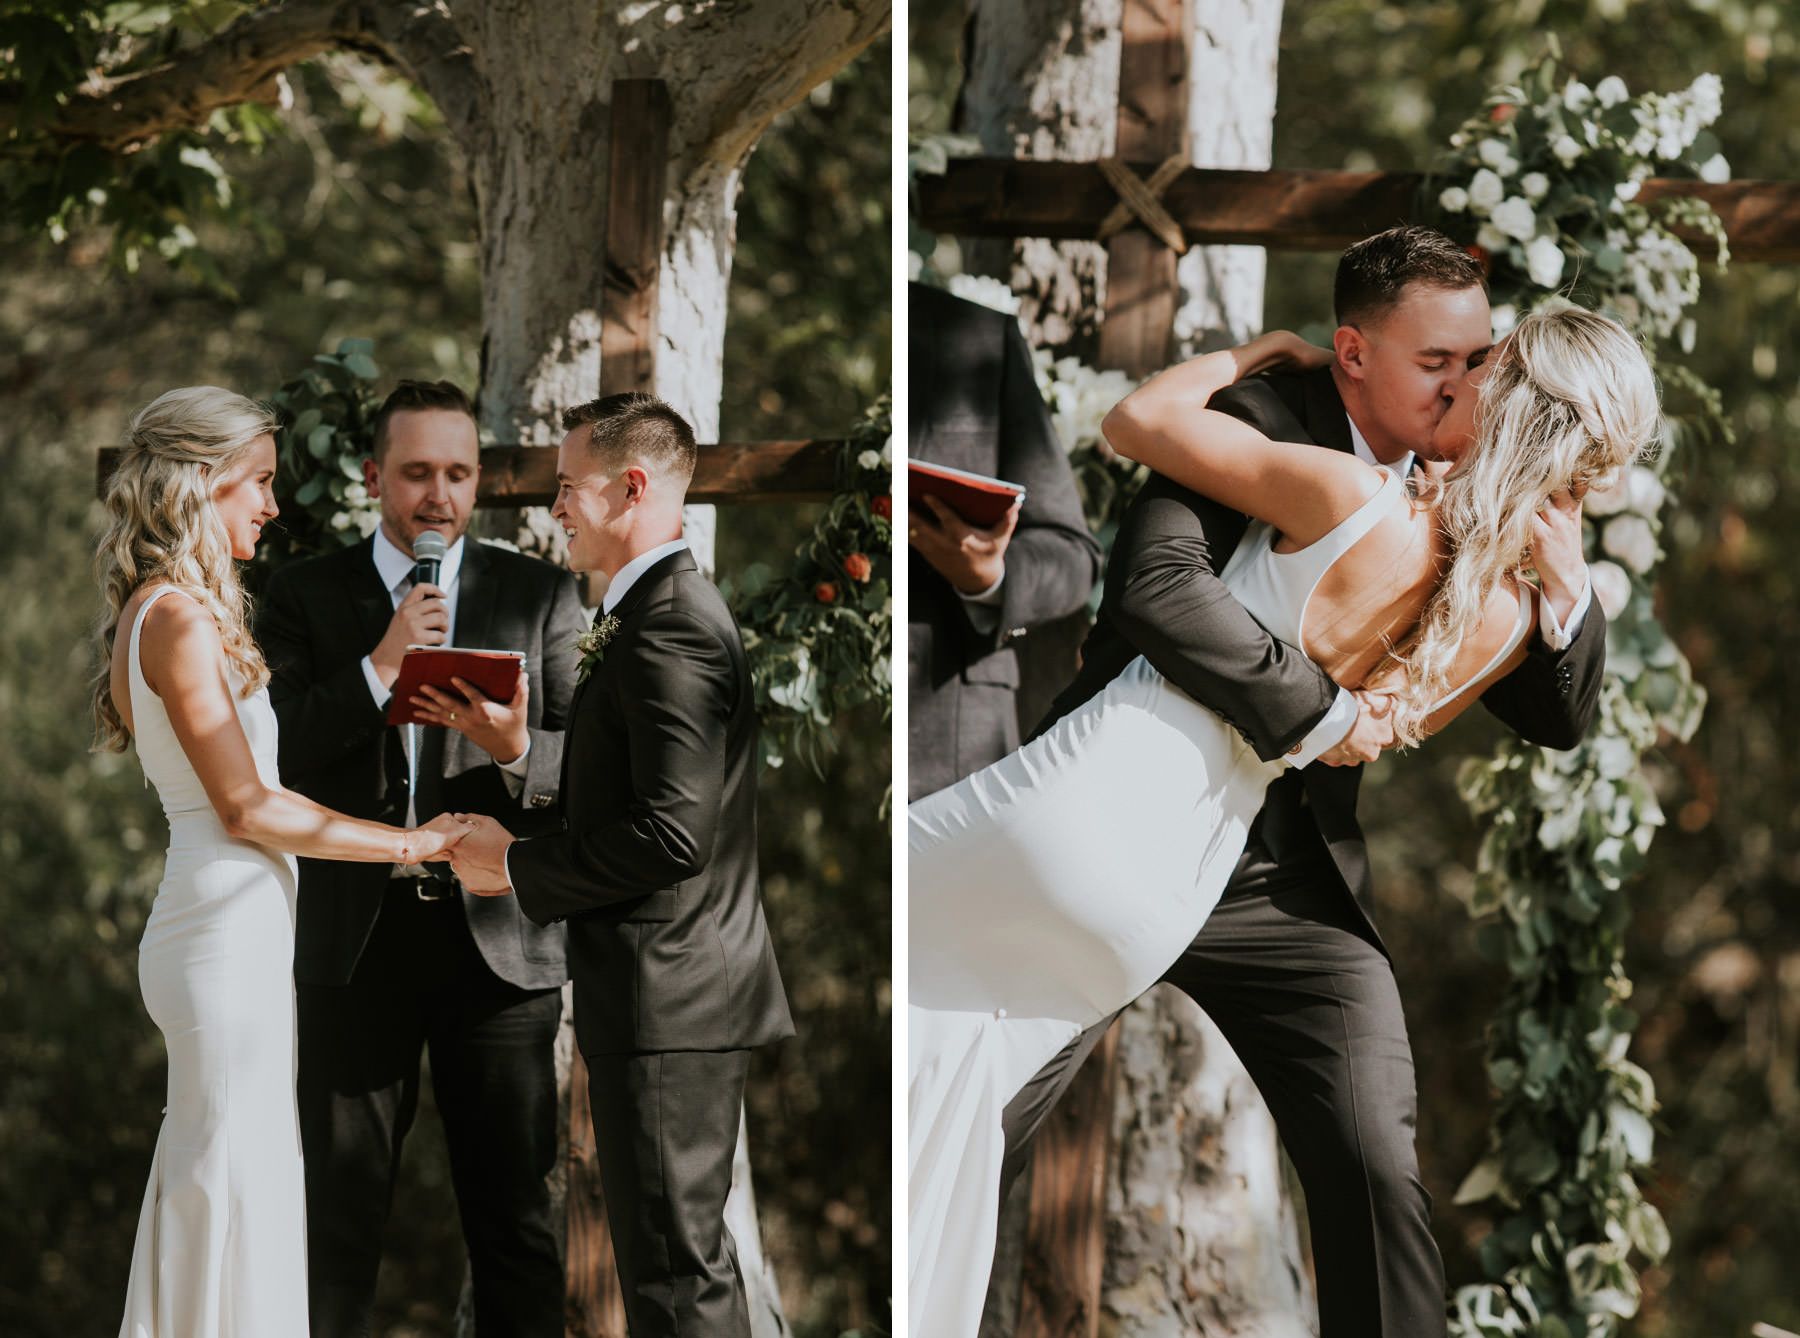 Groom dipping bride for first kiss